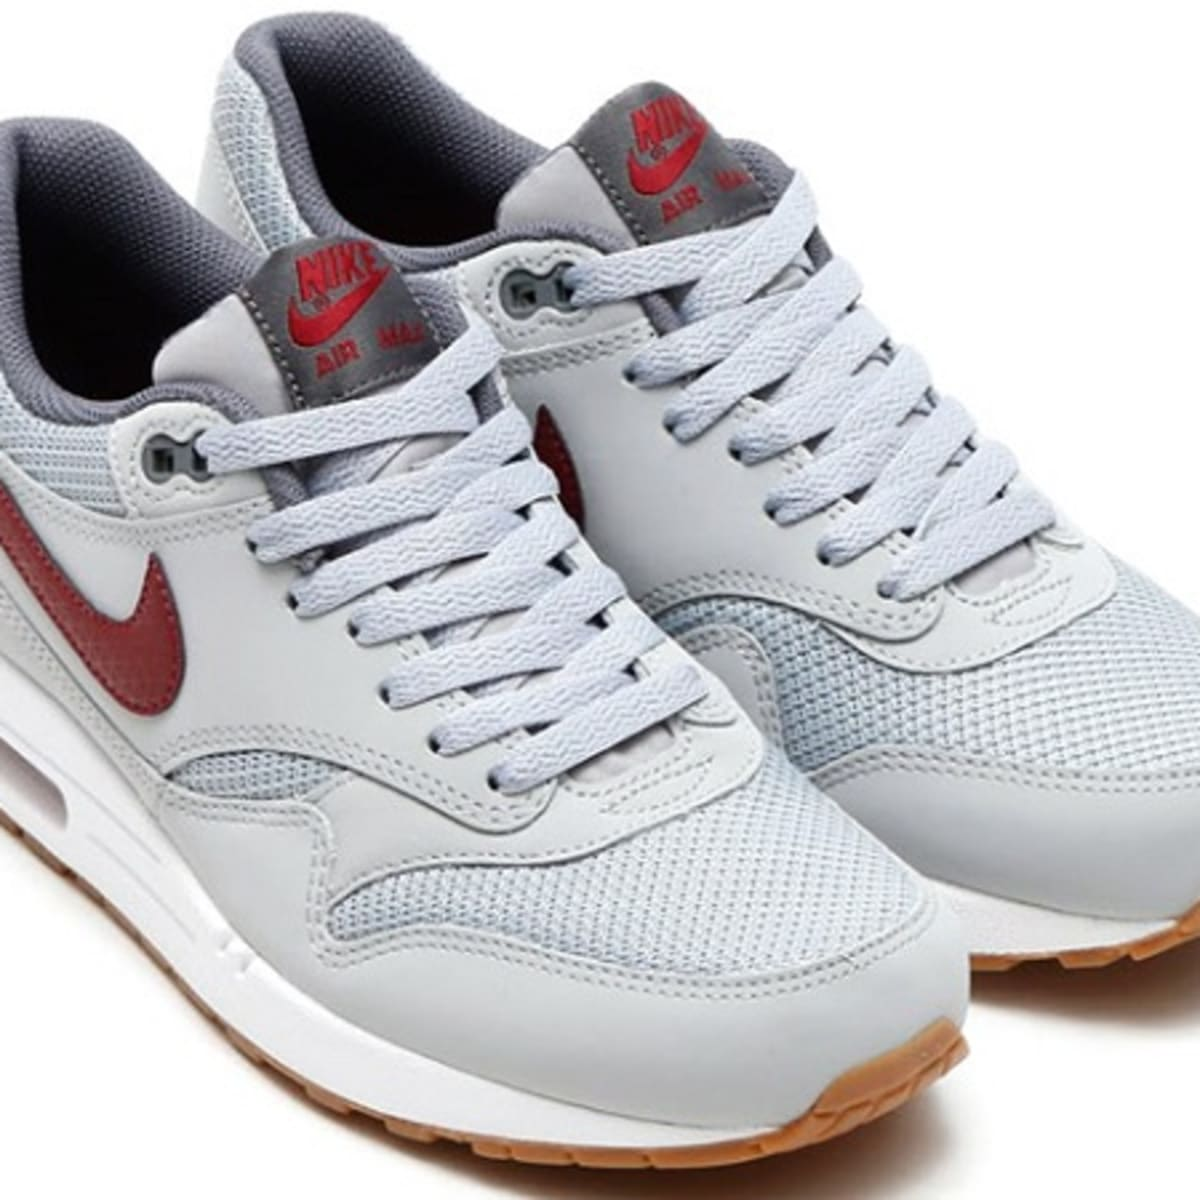 cultura Ataque de nervios colección  Nike Air Max 1 Essential - Wolf Grey/Team Red - Freshness Mag